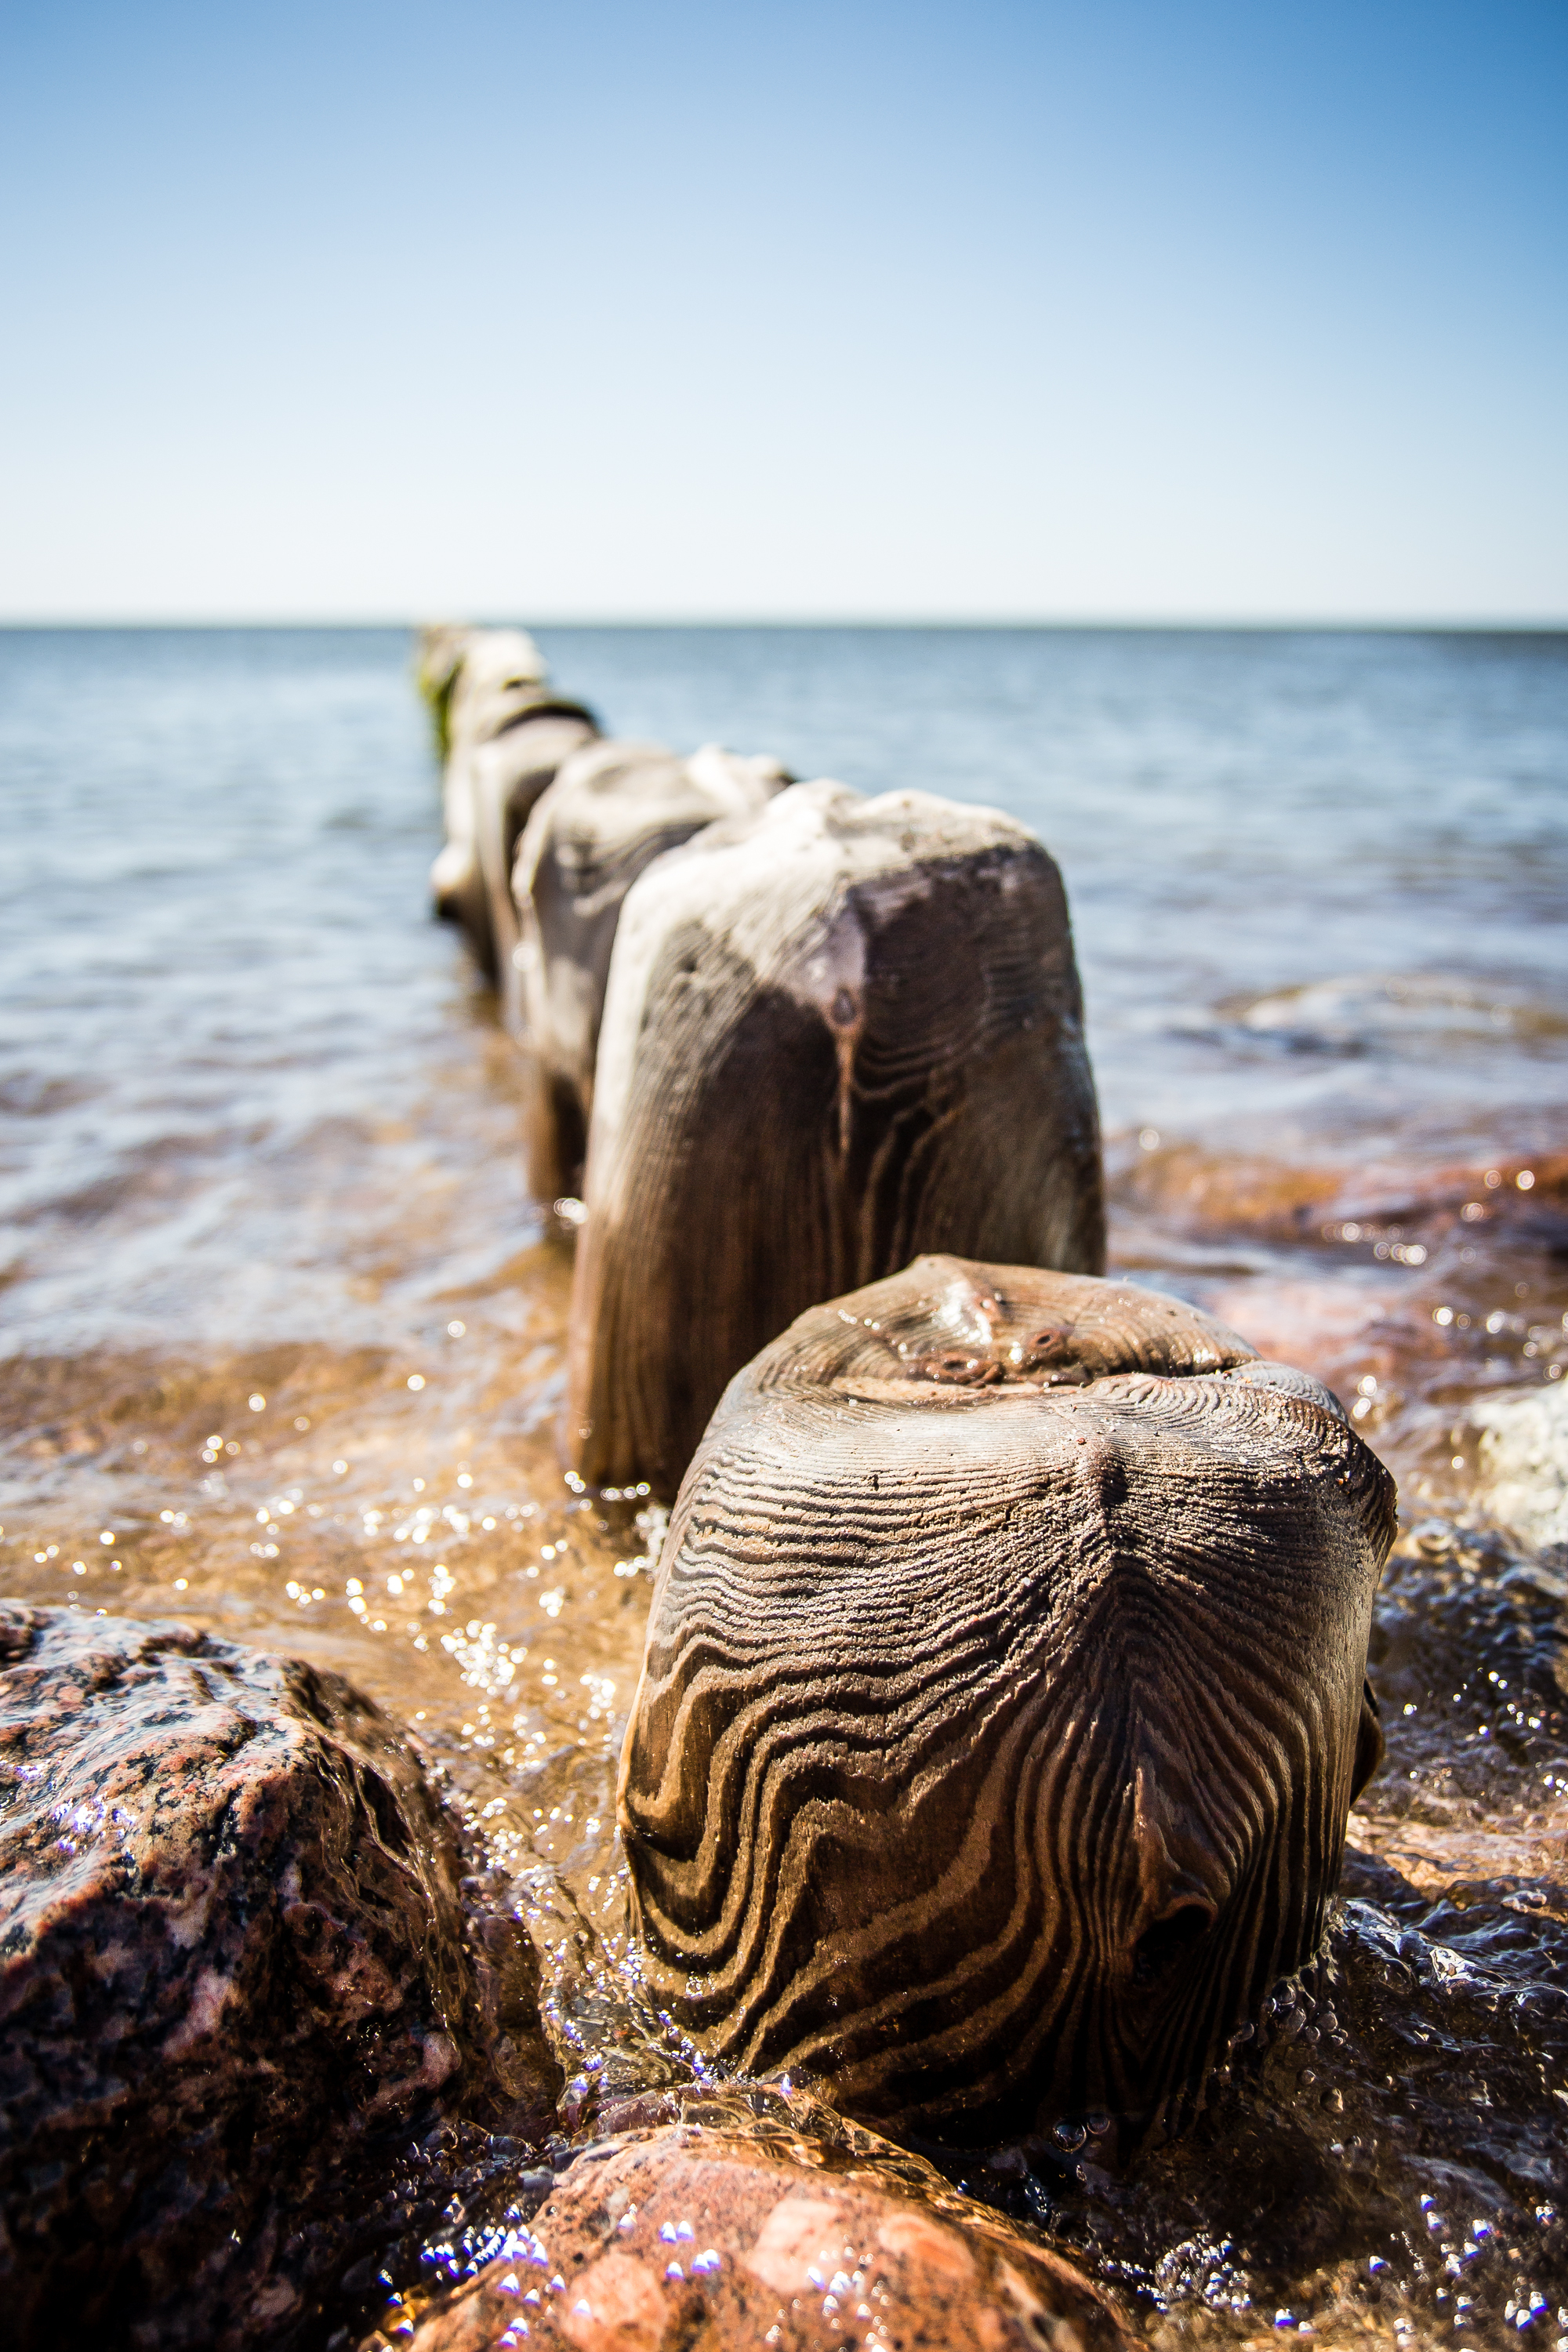 Wooden Piles In The Sea Via @Atisgailis